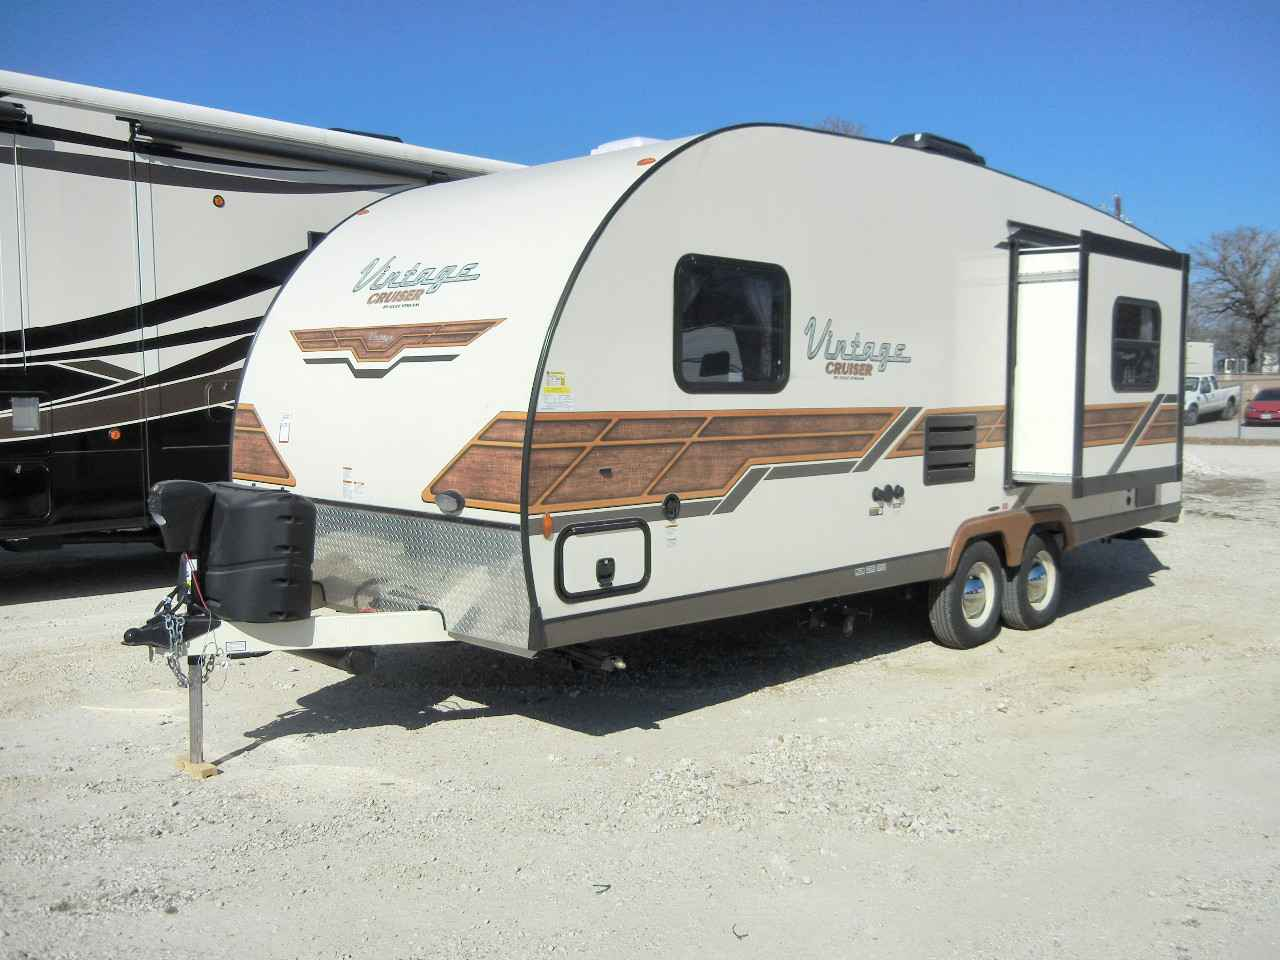 2017 New Gulf Stream Vintage Cruiser 23rss Woody Travel